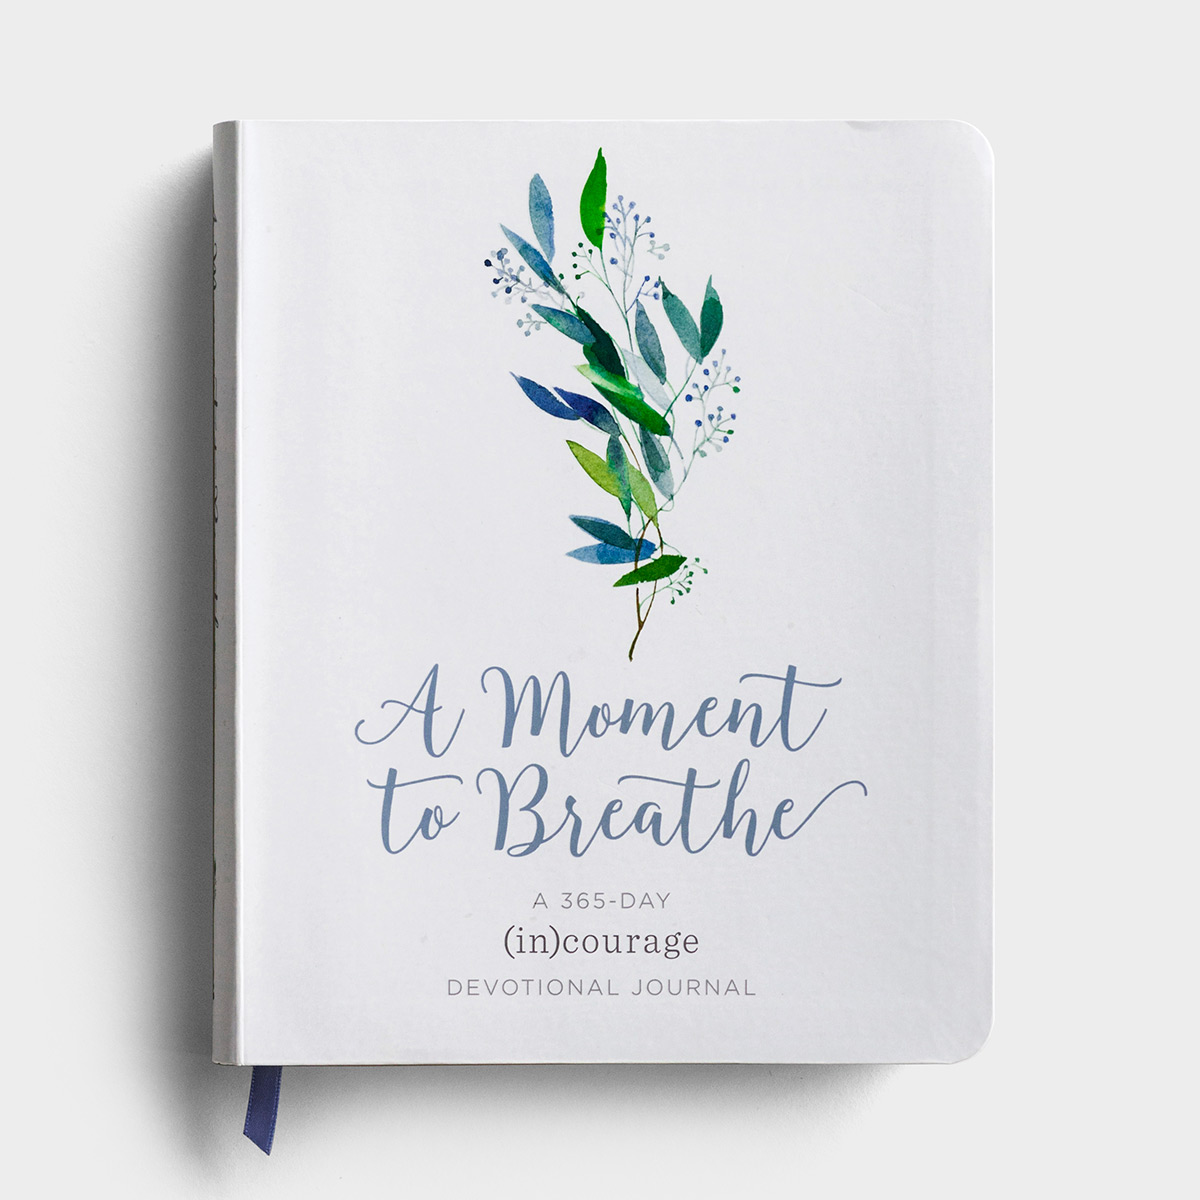 (in)courage - A Moment to Breathe - Devotional Journal